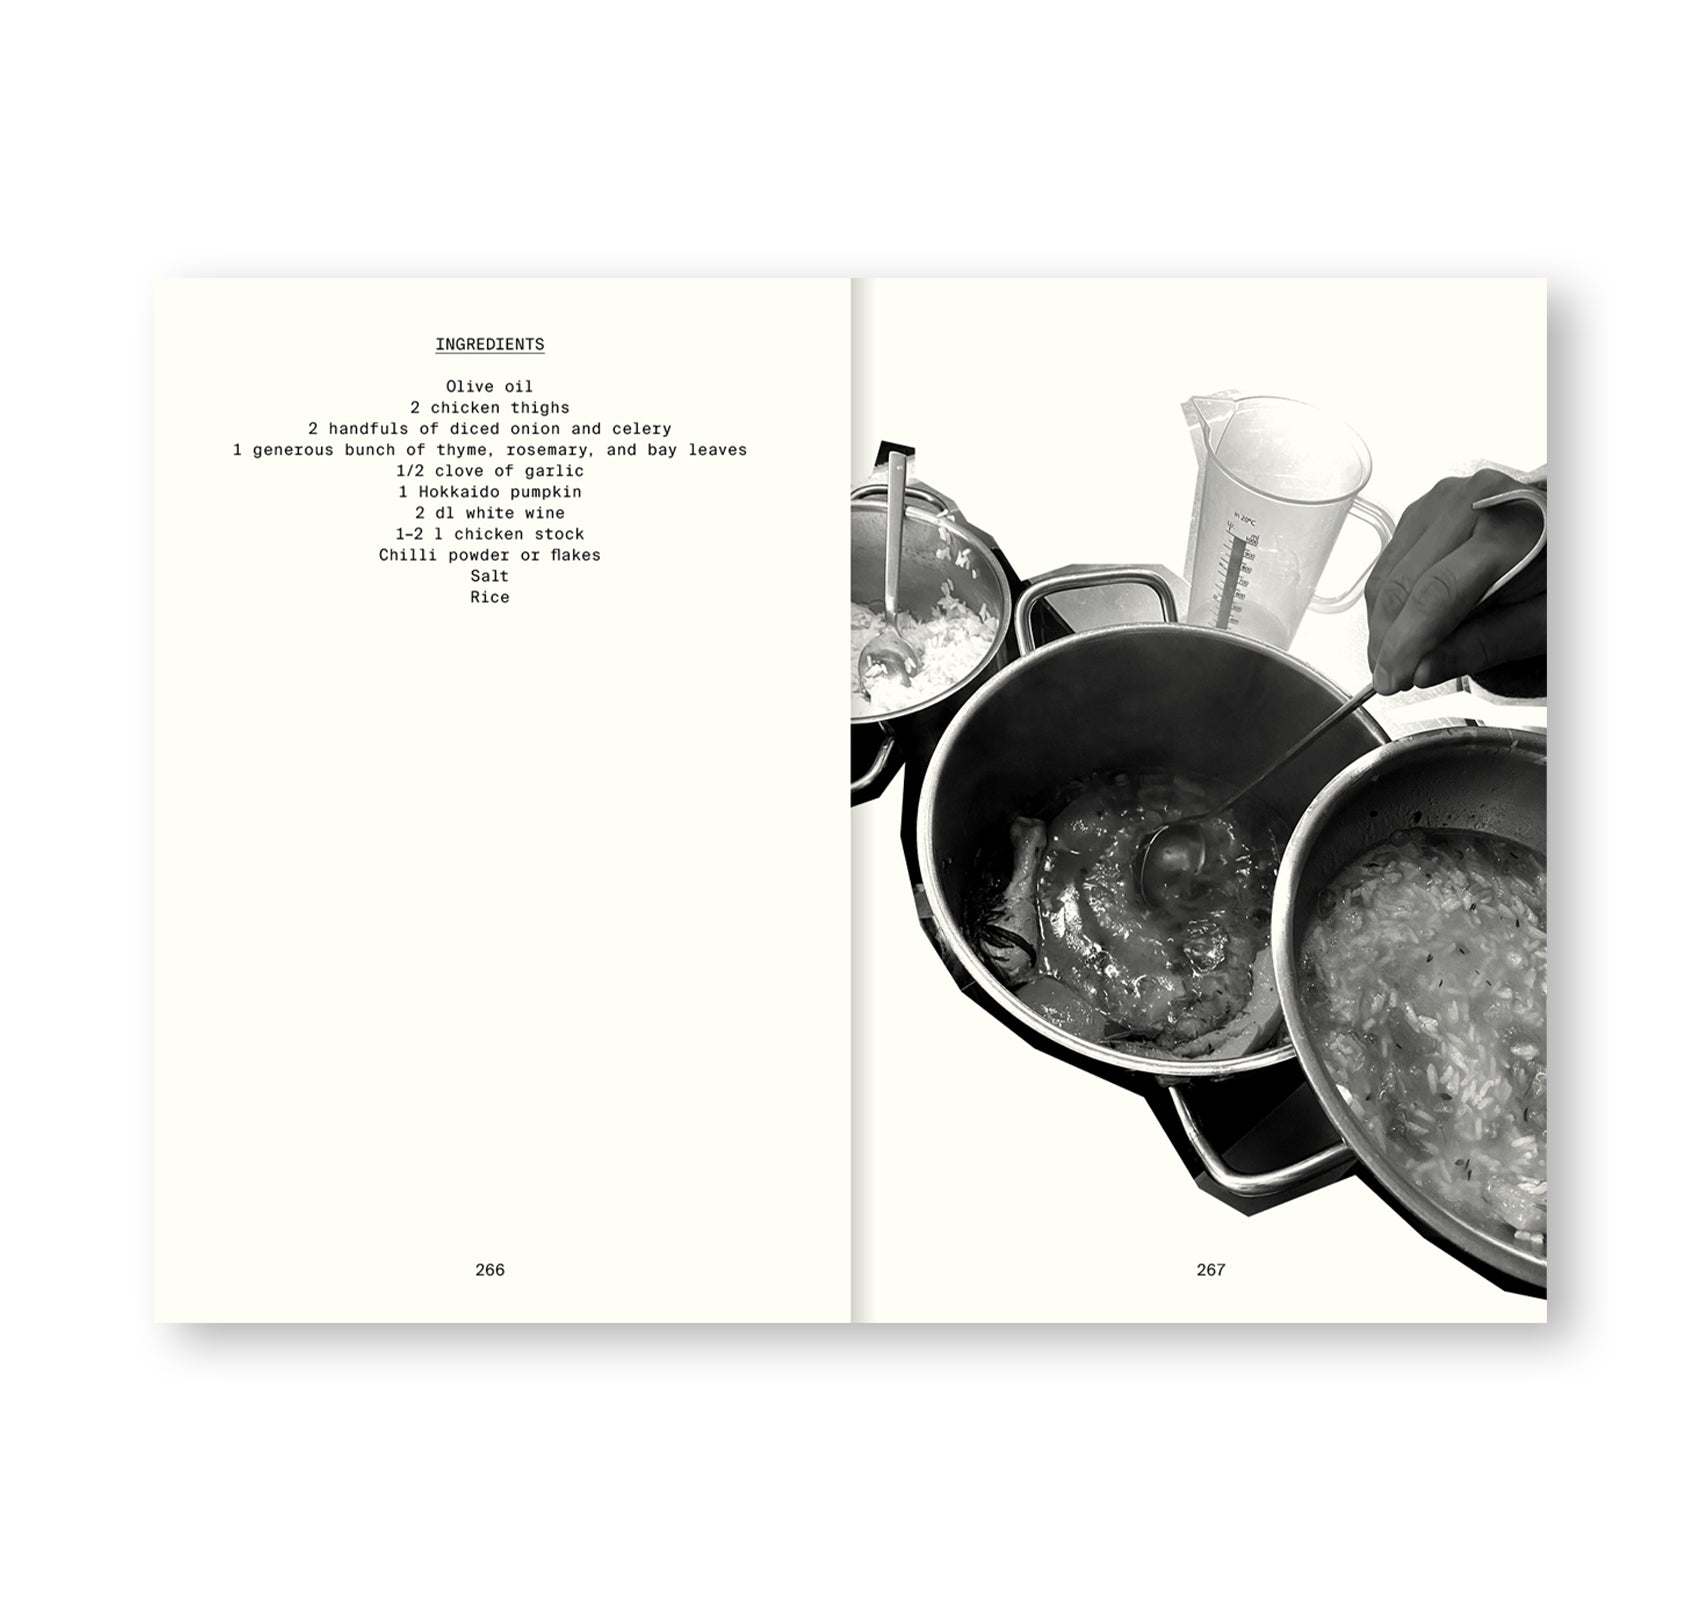 ALL THE STUFF WE COOKED: 49 RECIPES by Frederik Bille Brahe, Masanao Hirayama